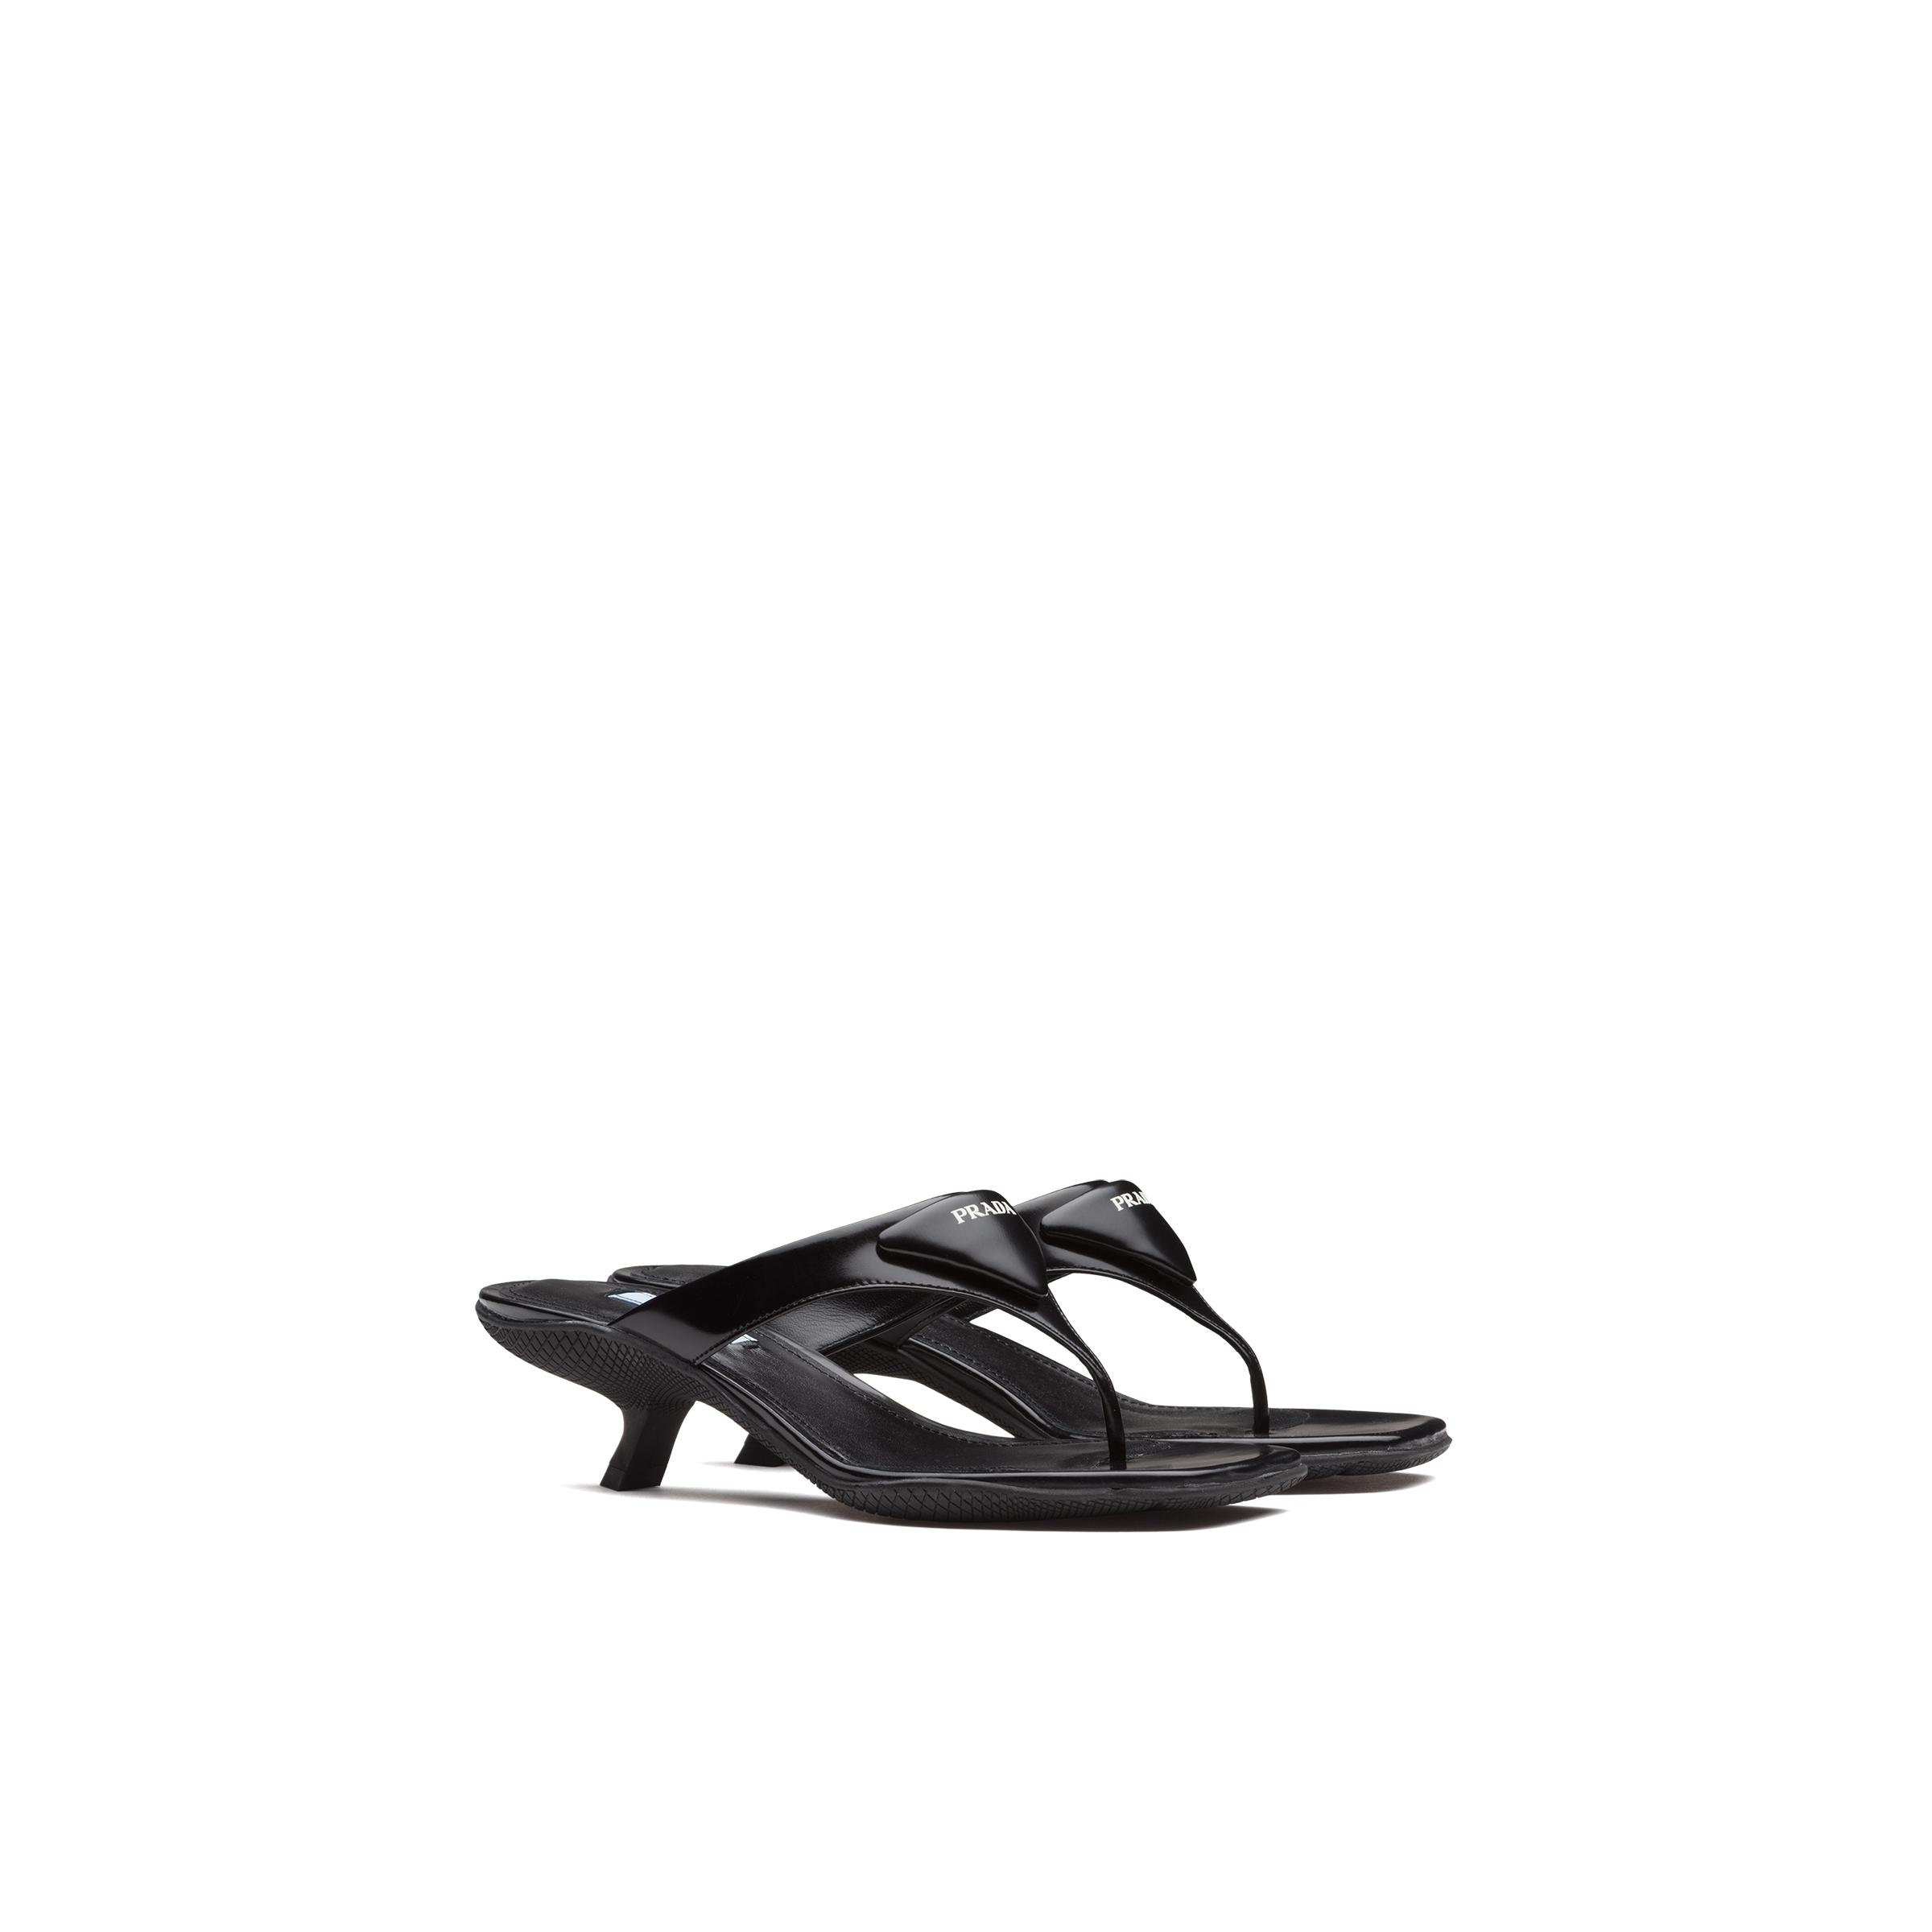 Brushed Leather High-heeled Thong Sandals Women Black